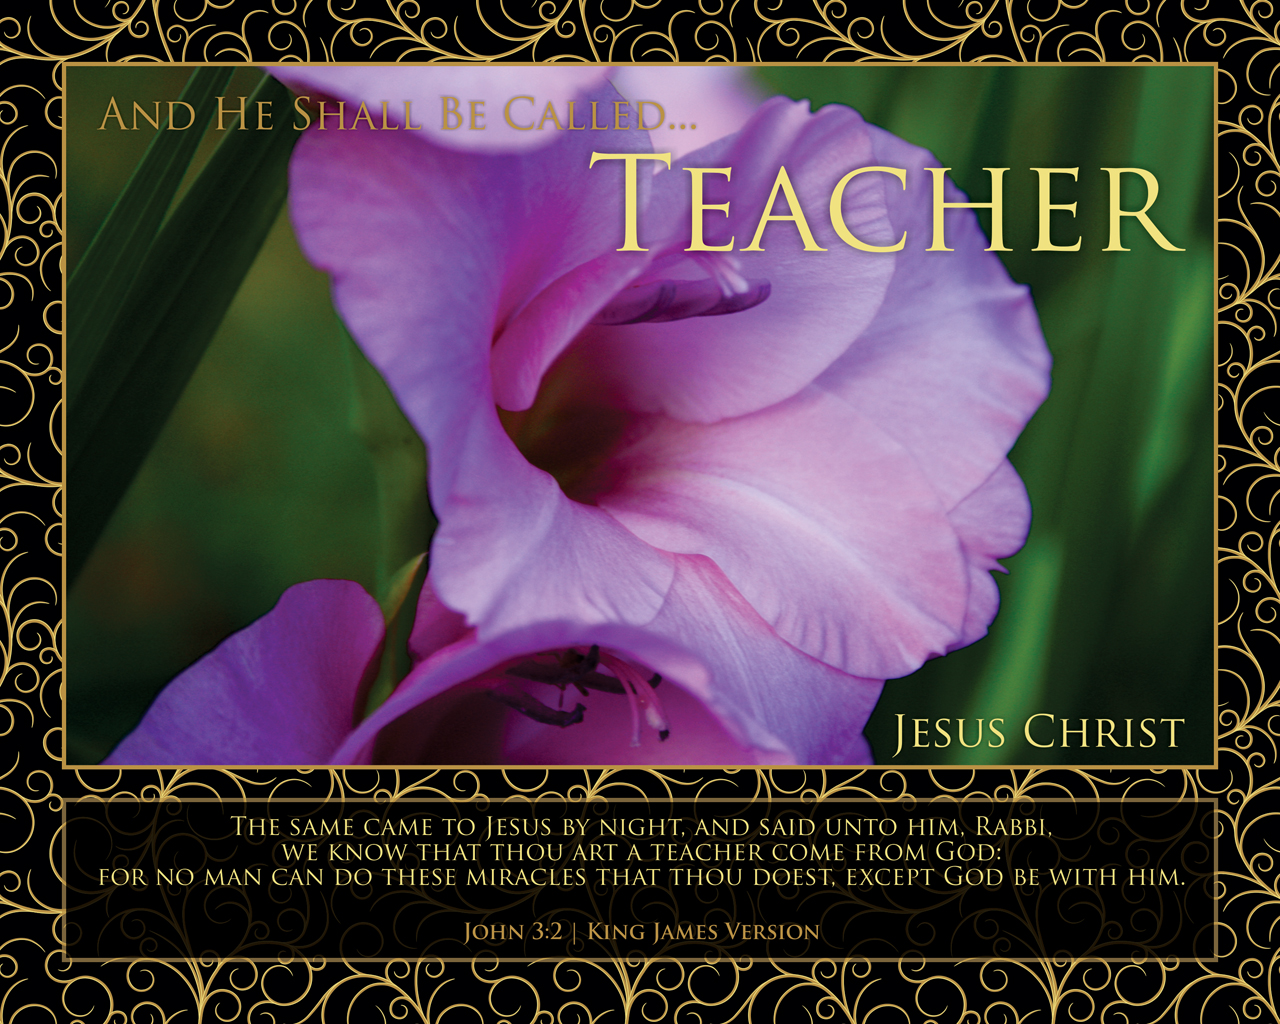 Jesus as the Best Teacher http://delivertheword.com/andheshallbecalled/2011/08/24/teacher/